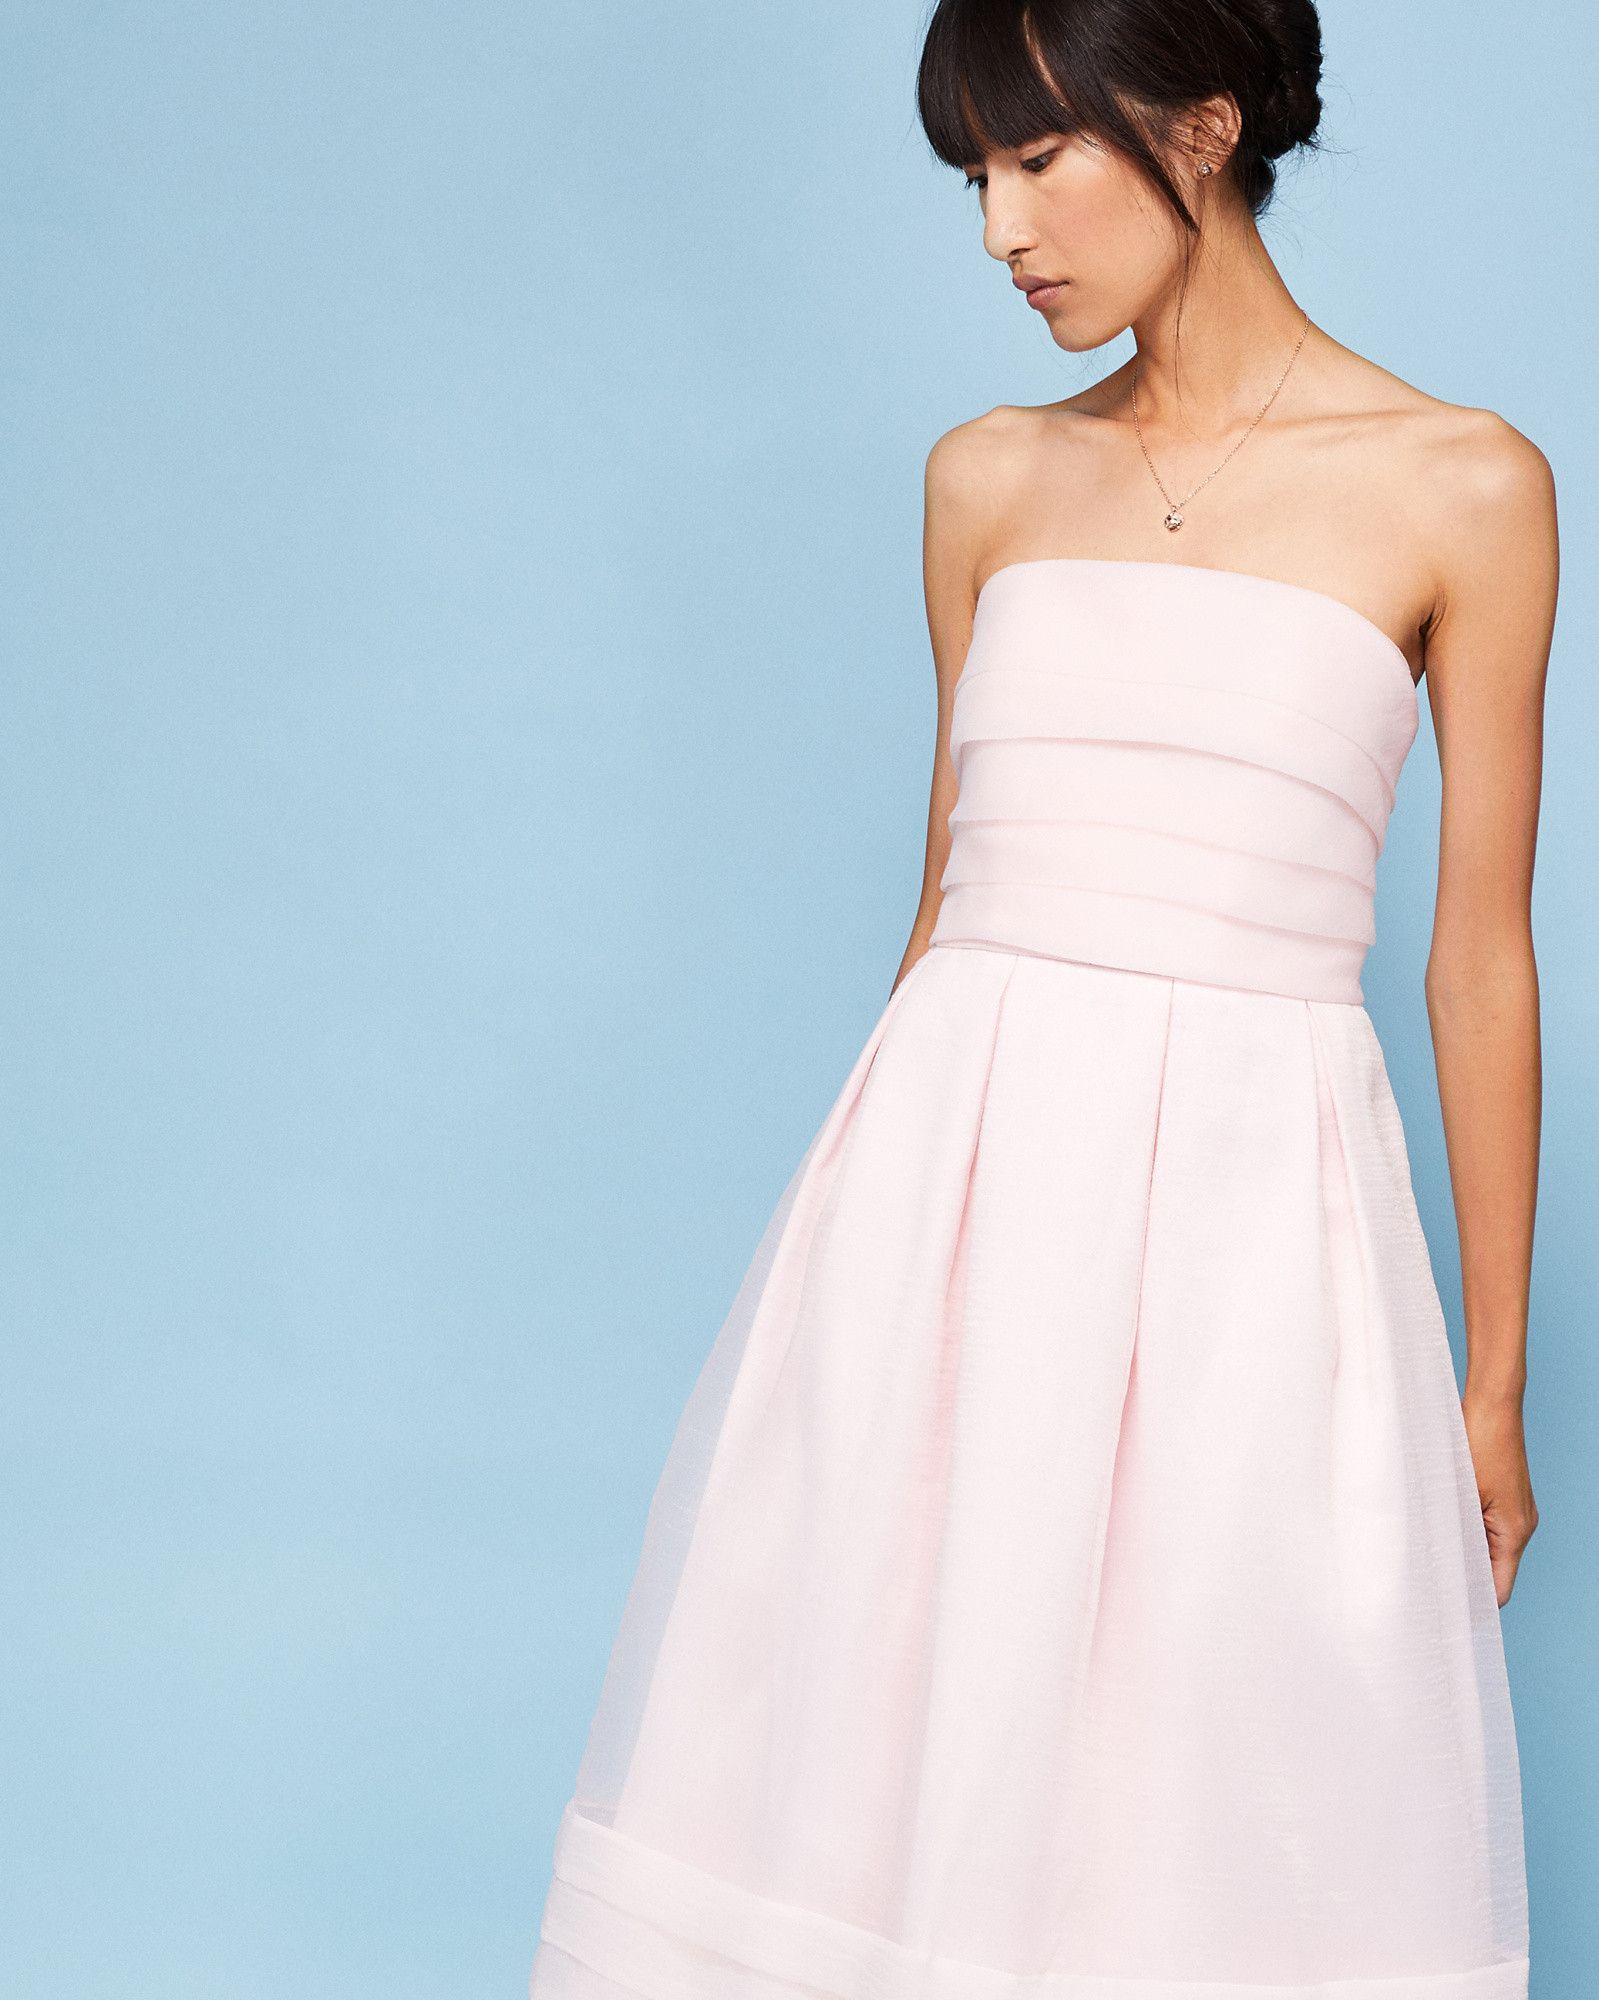 3903a6f46 ... Ted Baker. Shop a range of the newest arrivals in women s fashion  clothing. BANDU Strapless tiered maxi dress  TedToToe - for all these  weddings we have ...